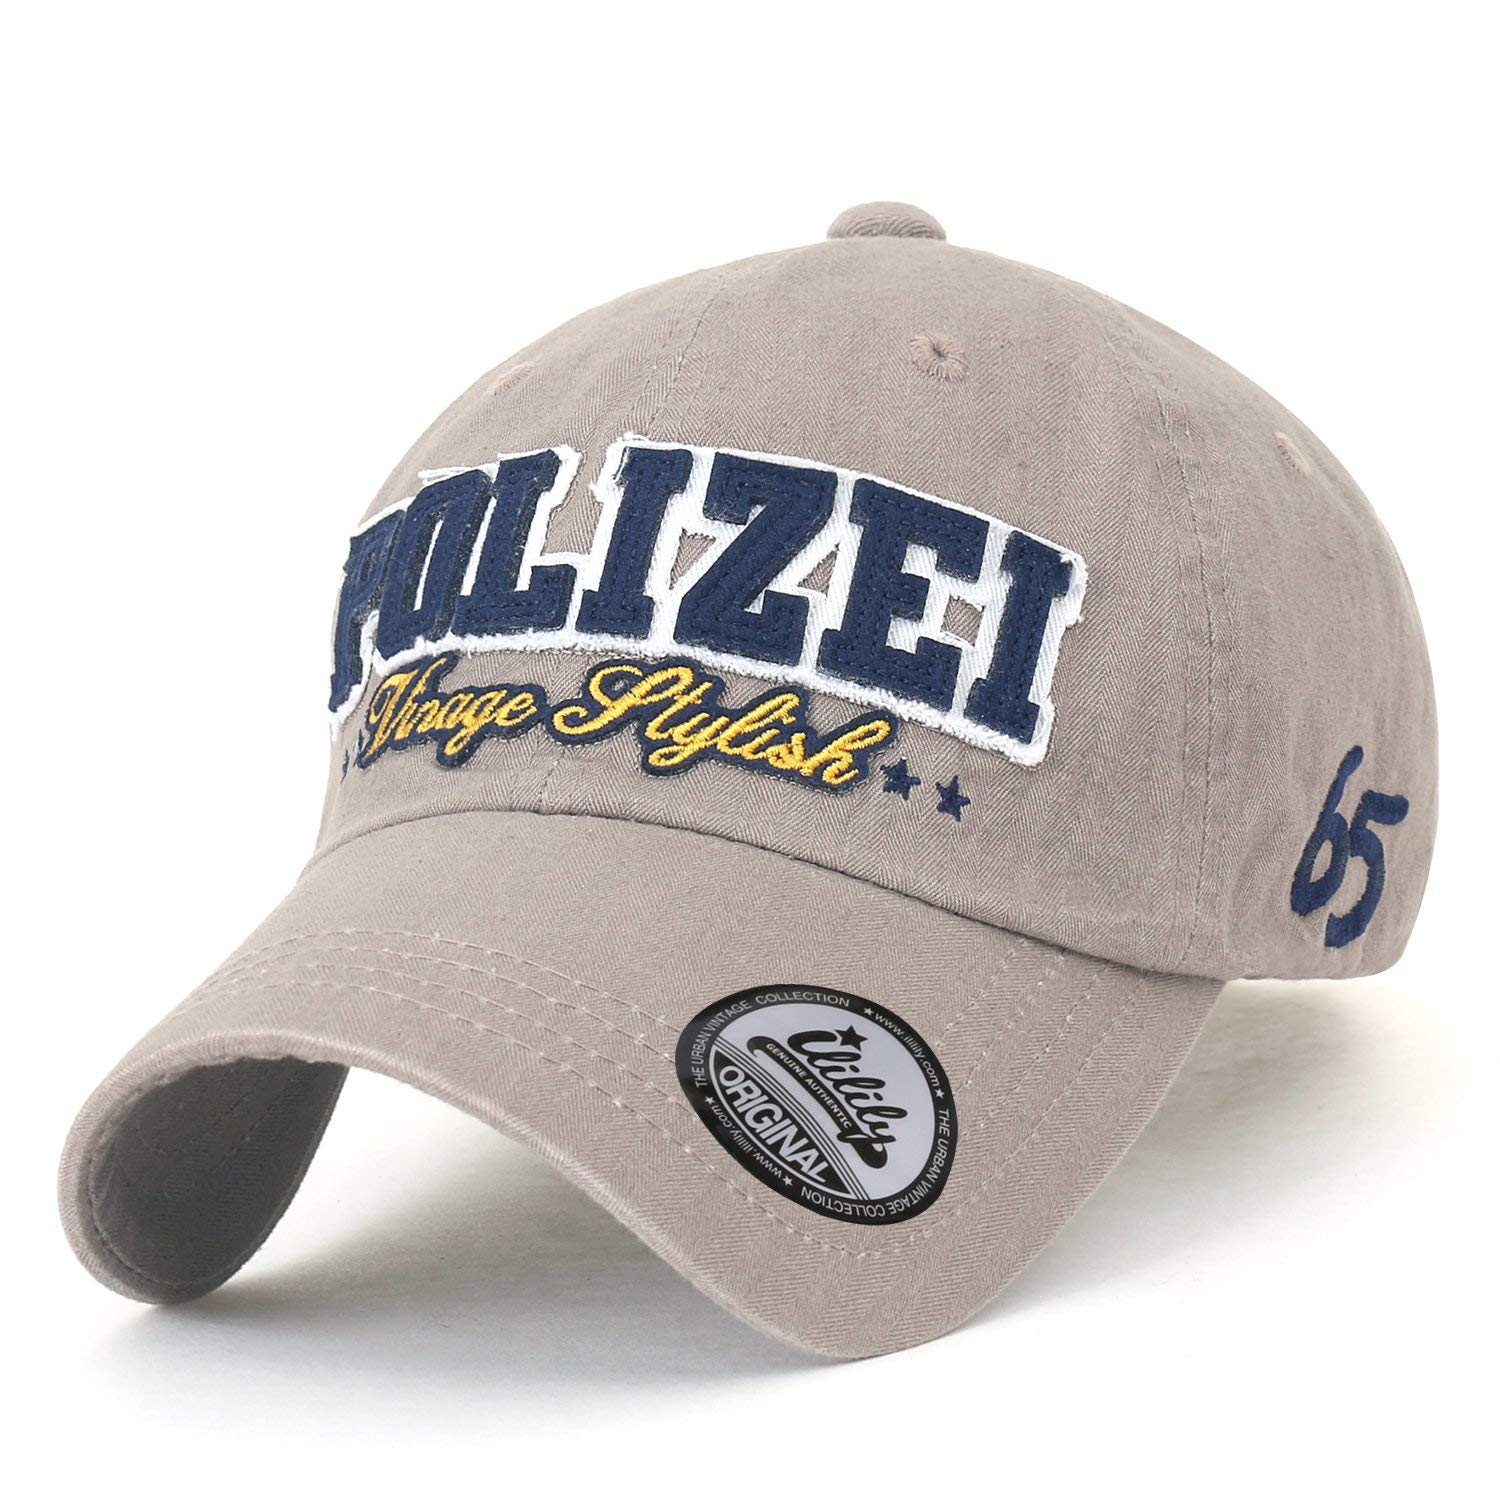 39709de16d8 Get Quotations · ililily Polizei Patch Baseball Cap Solid Color Strap Back  Trucker Hat